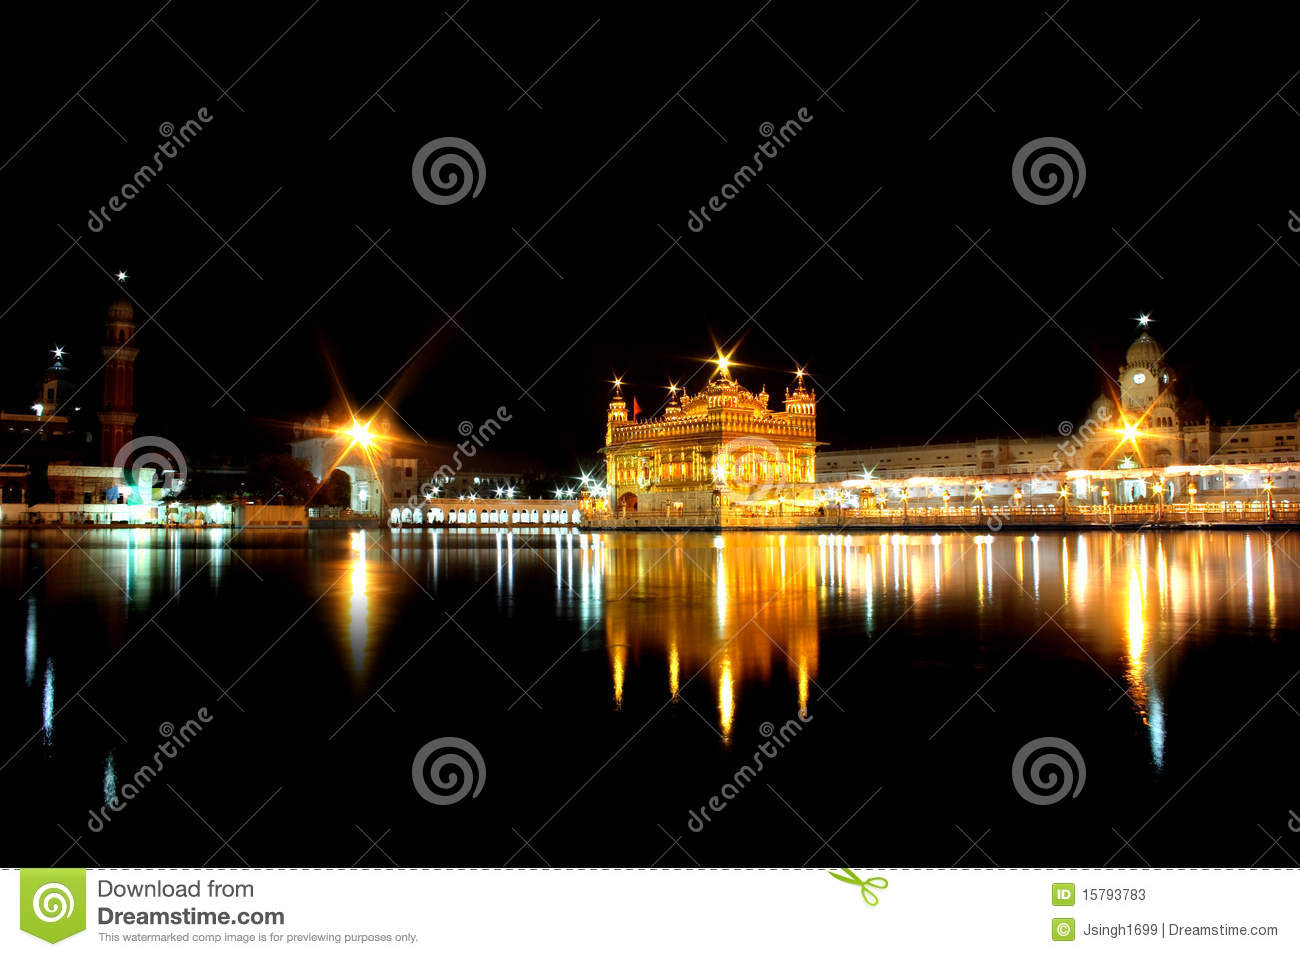 Le temple d or, Amritsar, Pendjab, Inde